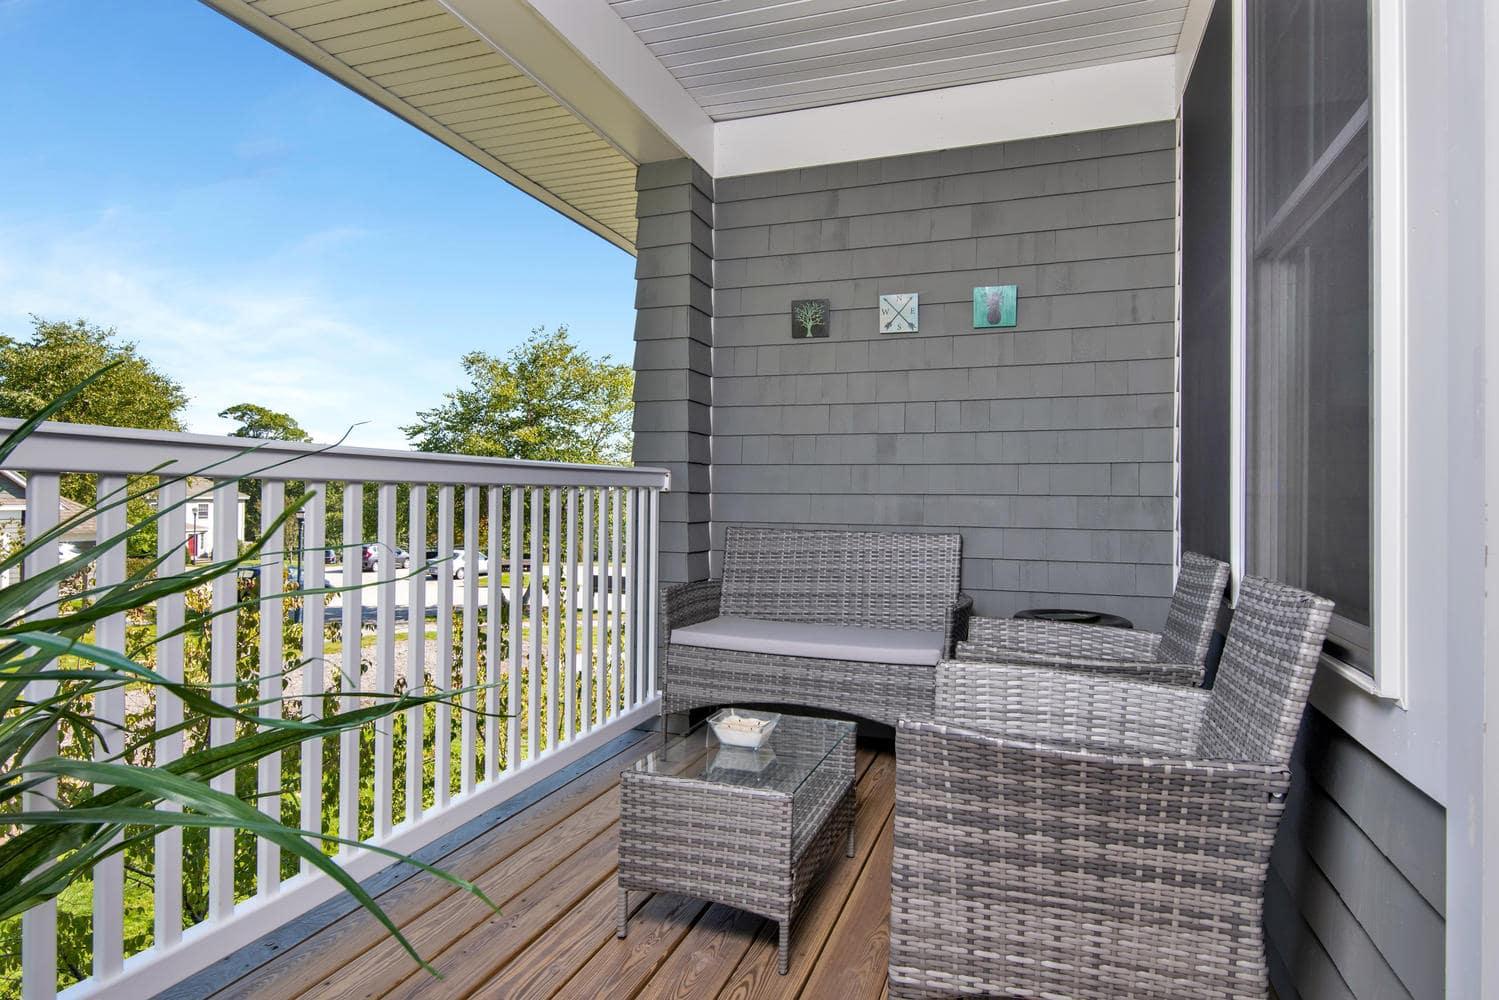 7 Camperdown Elm Dr-large-025-20-Balcony-1499x1000-72dpi.jpg